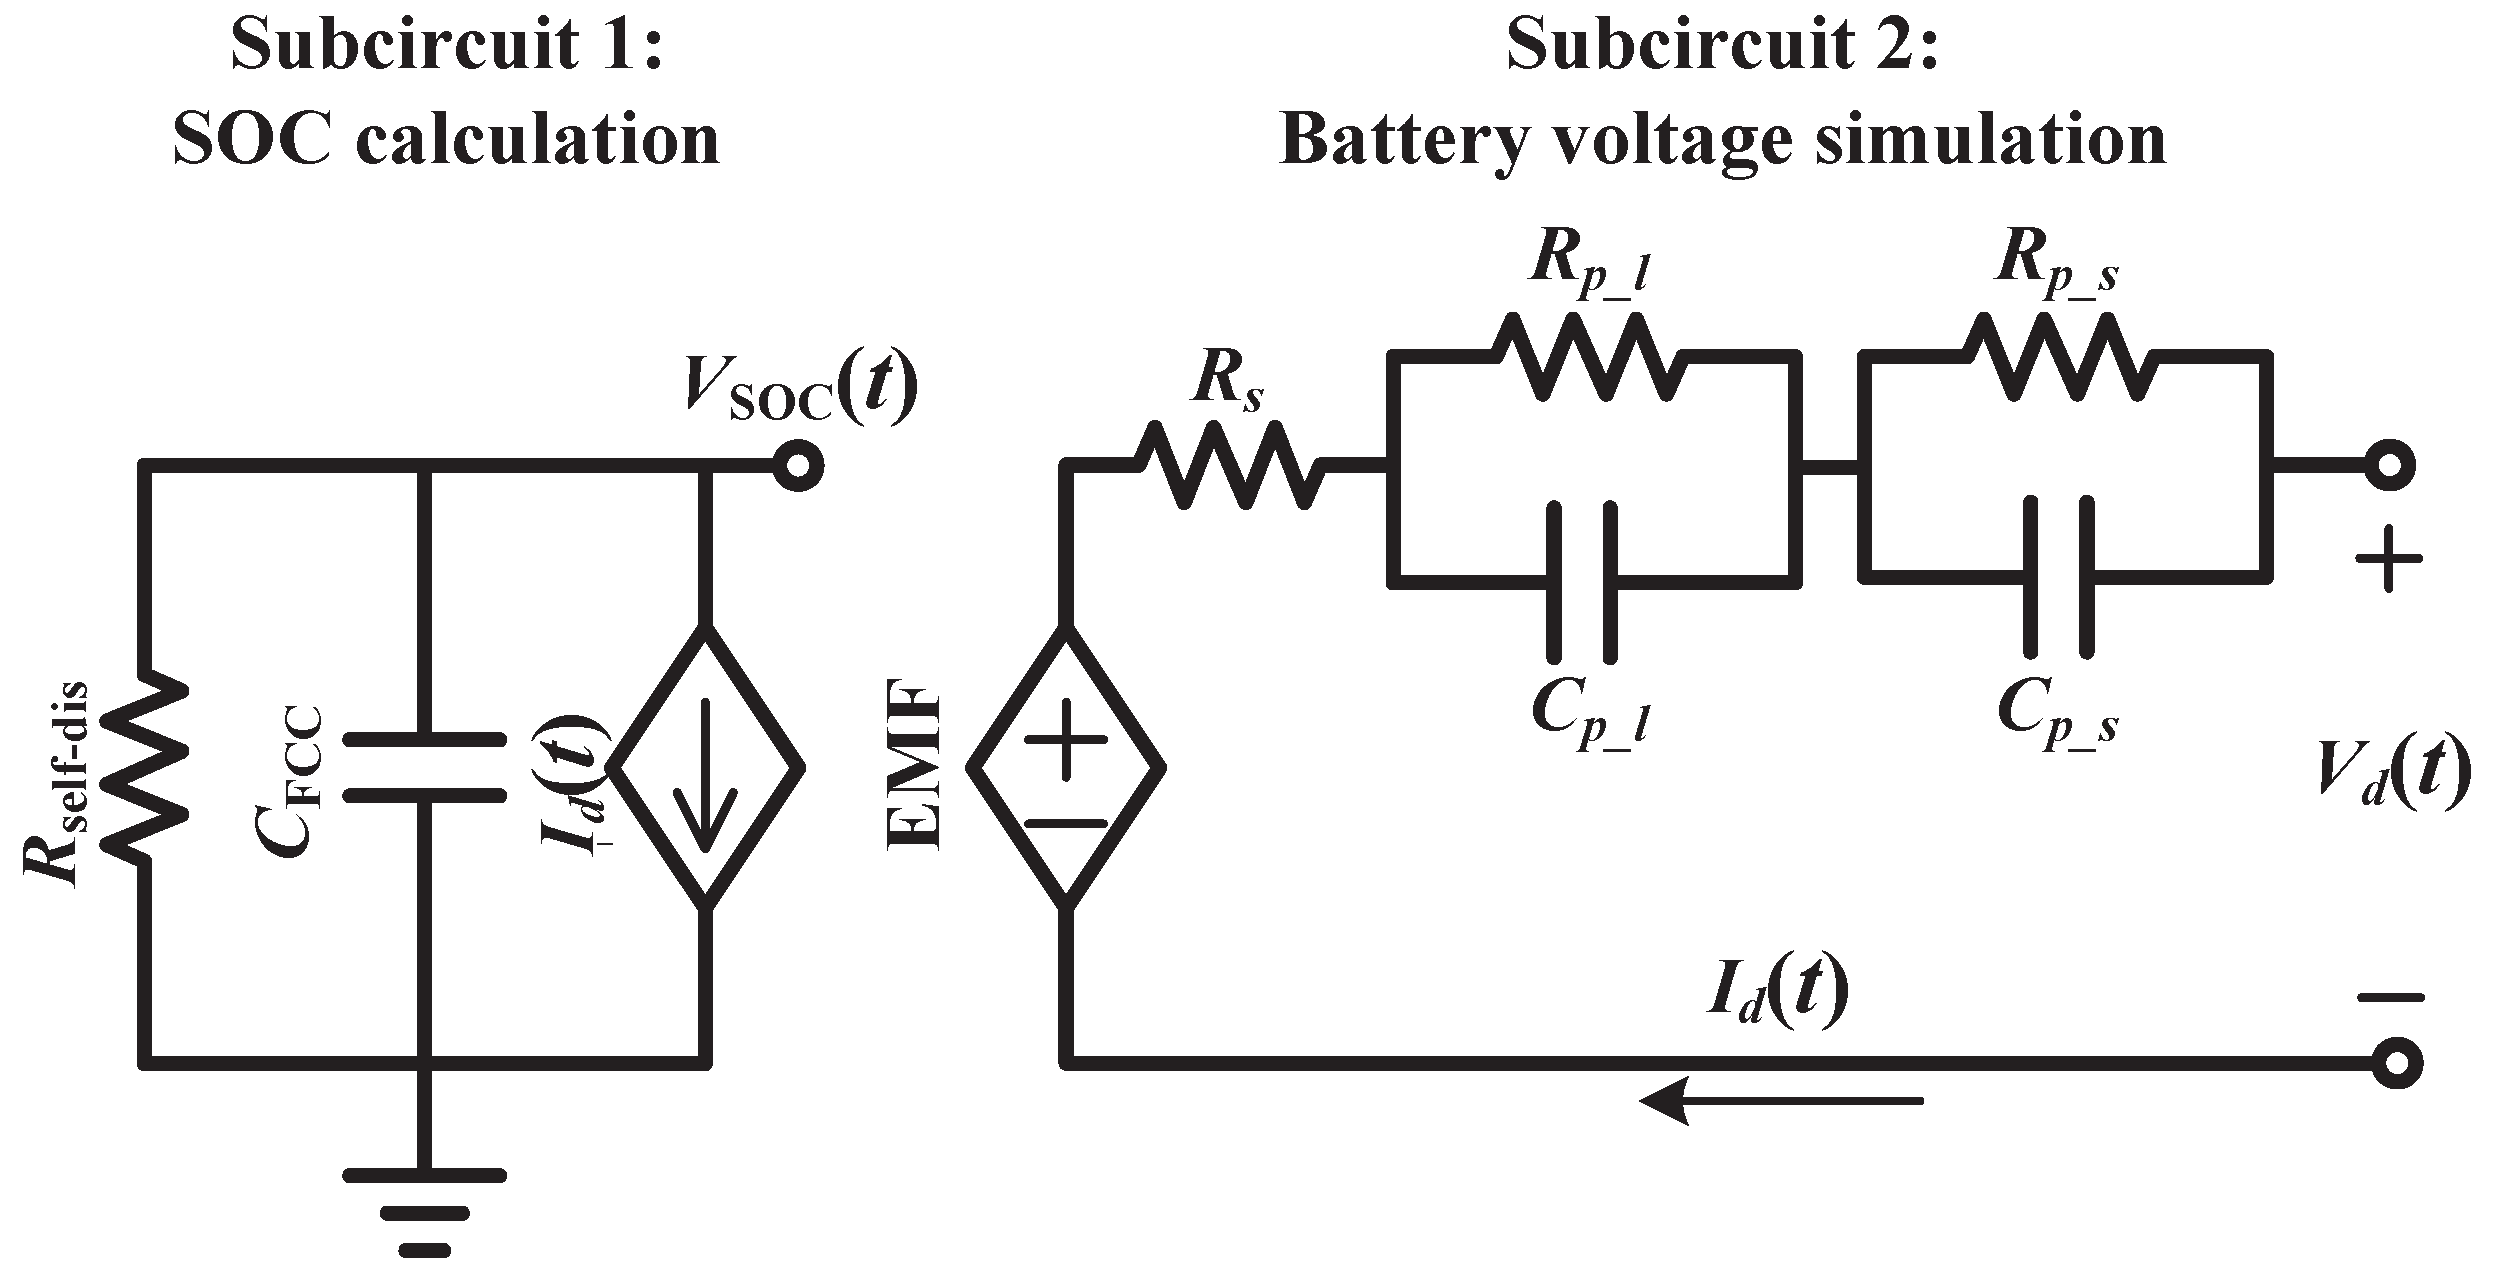 Energies Free Full Text A Lithium Ion Battery Simulator Based On Circuit Diagram Including Emf Capacitor C Resistor 09 00051 G001 1024